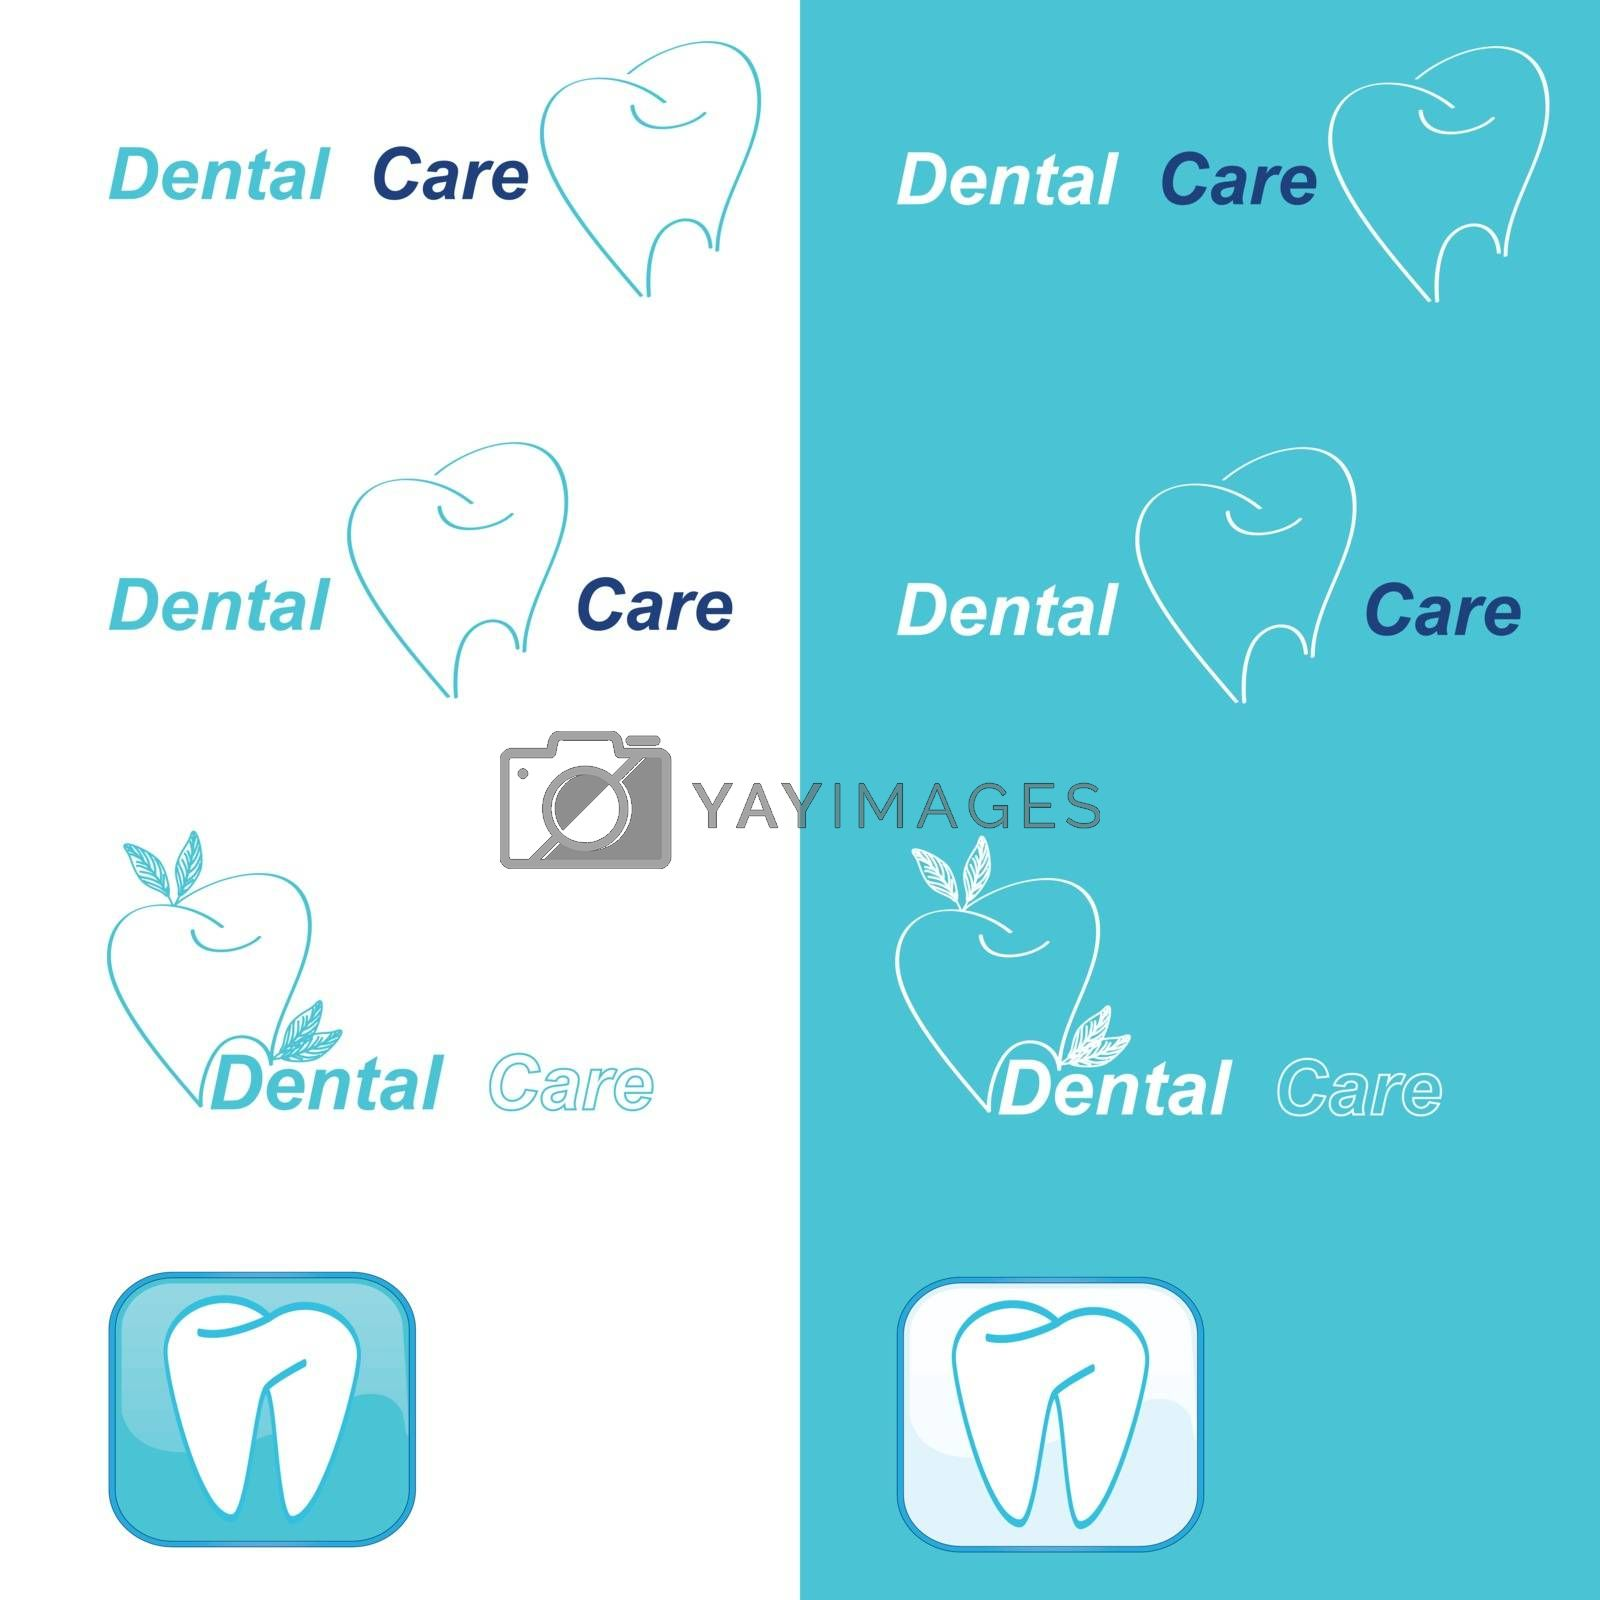 Healthy teeth logo collection. Clean and bright designs. Beautiful color combinations.         Healthy teeth logo collection. Clean and bright designs. Beautiful color combinations.